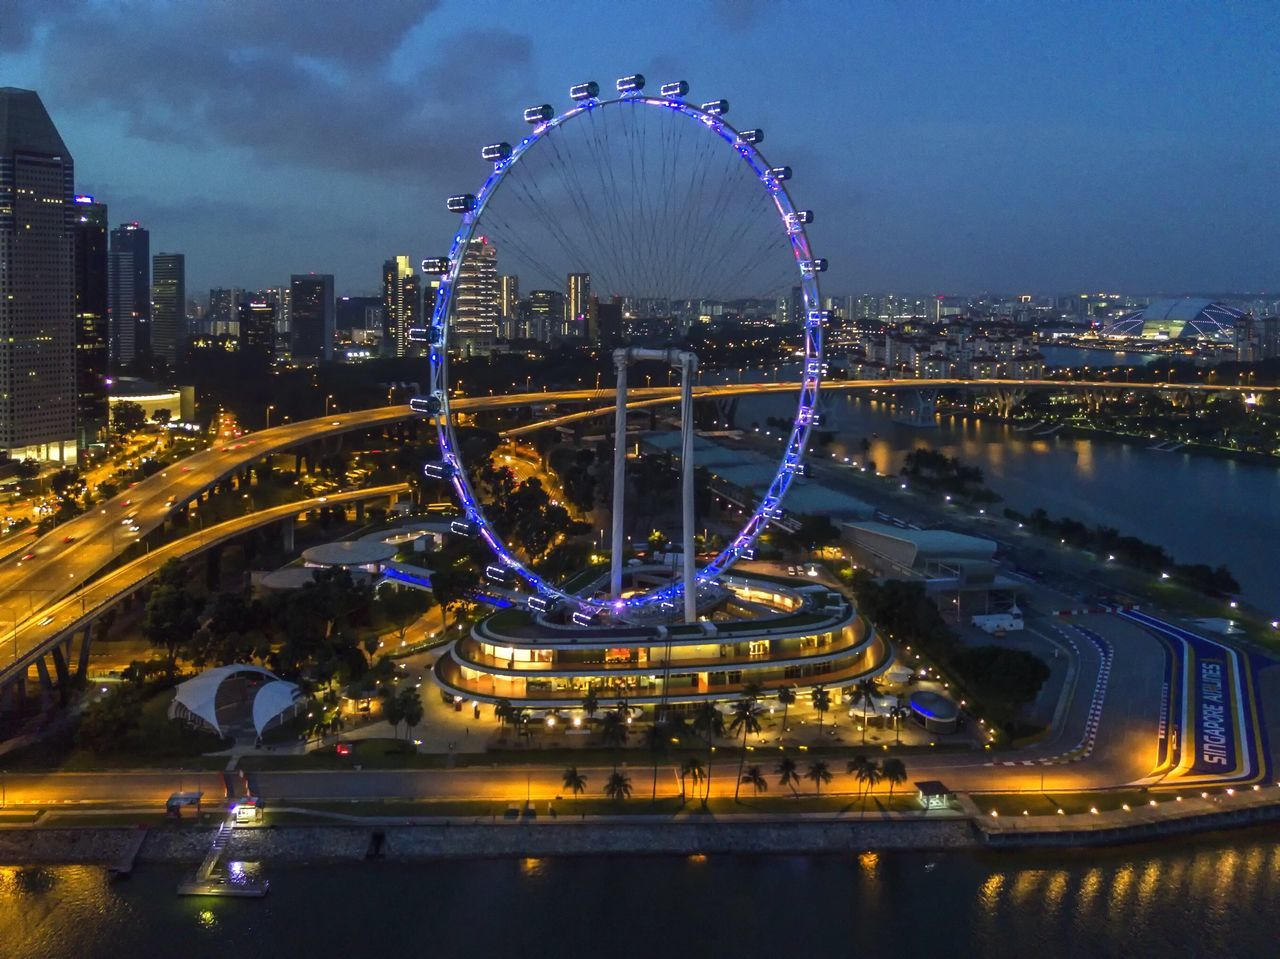 City Architecture Illuminated Bridge - Man Made Structure Building Exterior Transportation Night Skyscraper River Traffic Cityscape Travel Destinations Outdoors Built Structure Ferris Wheel Modern Sky Futuristic No People Connection Droneshot Dronephotography Singaporeflyer Nightphotography Cityscape